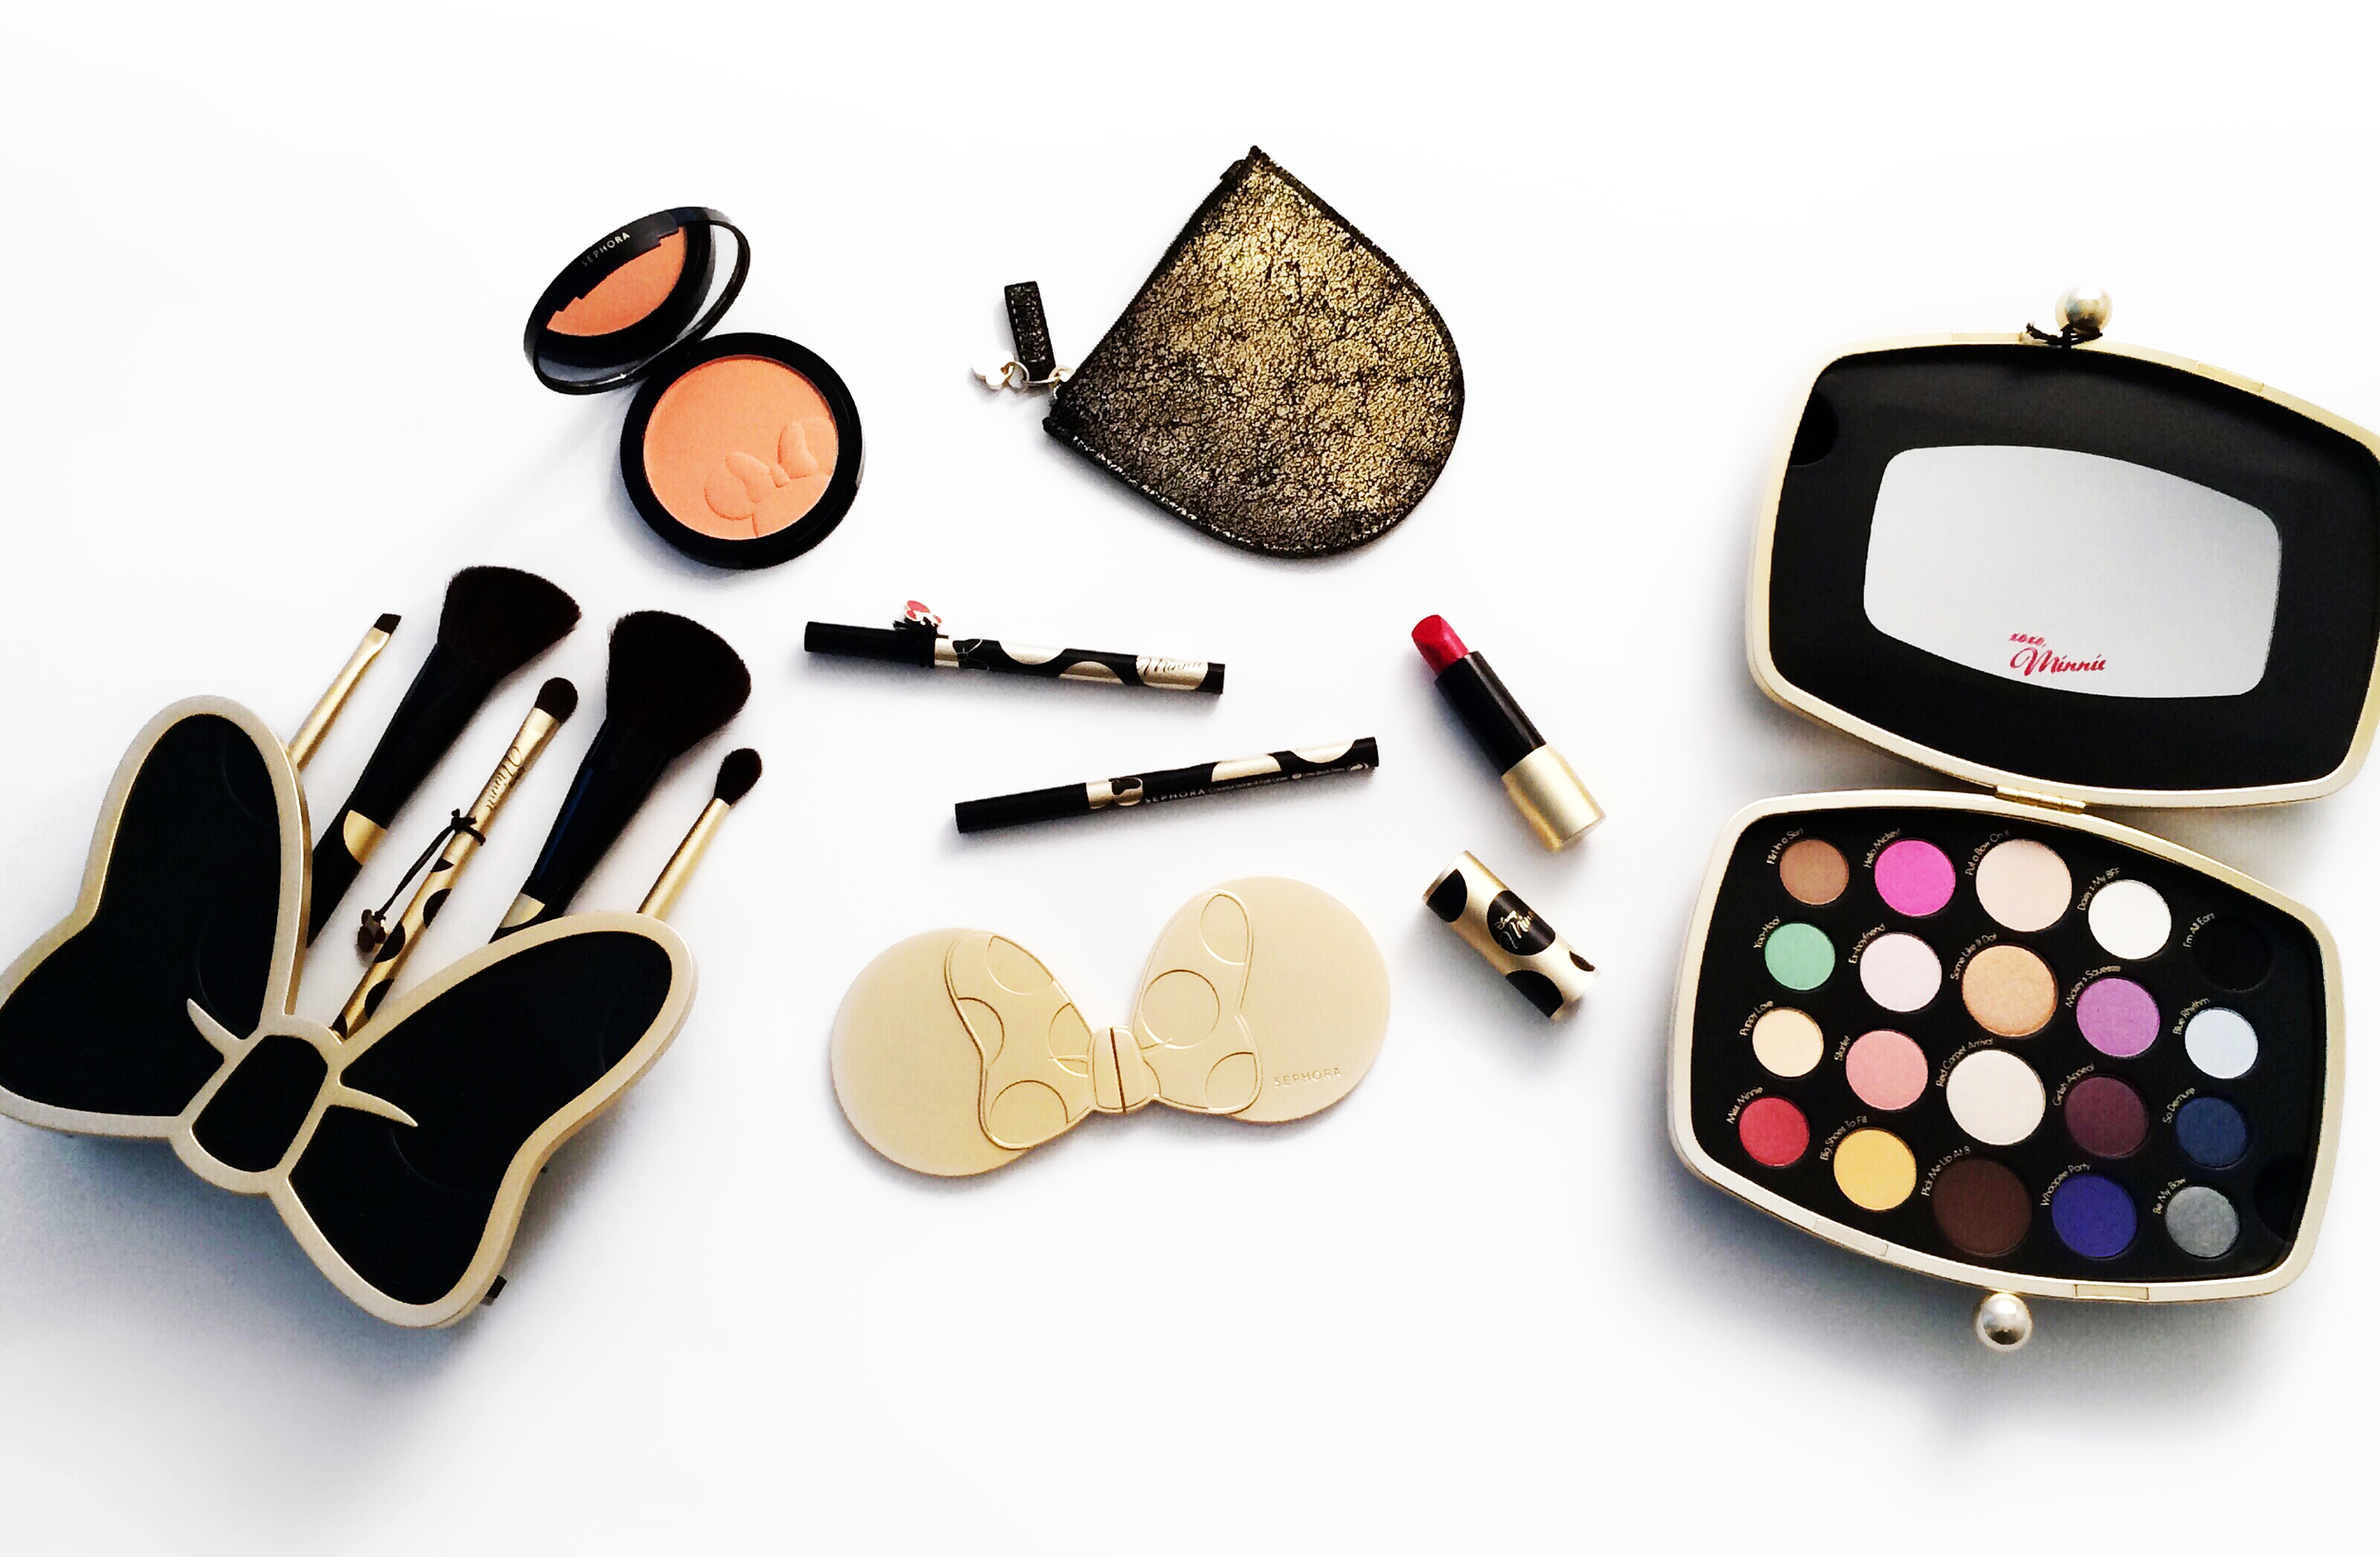 The Disney Minnie Beauty by Sephora Collection